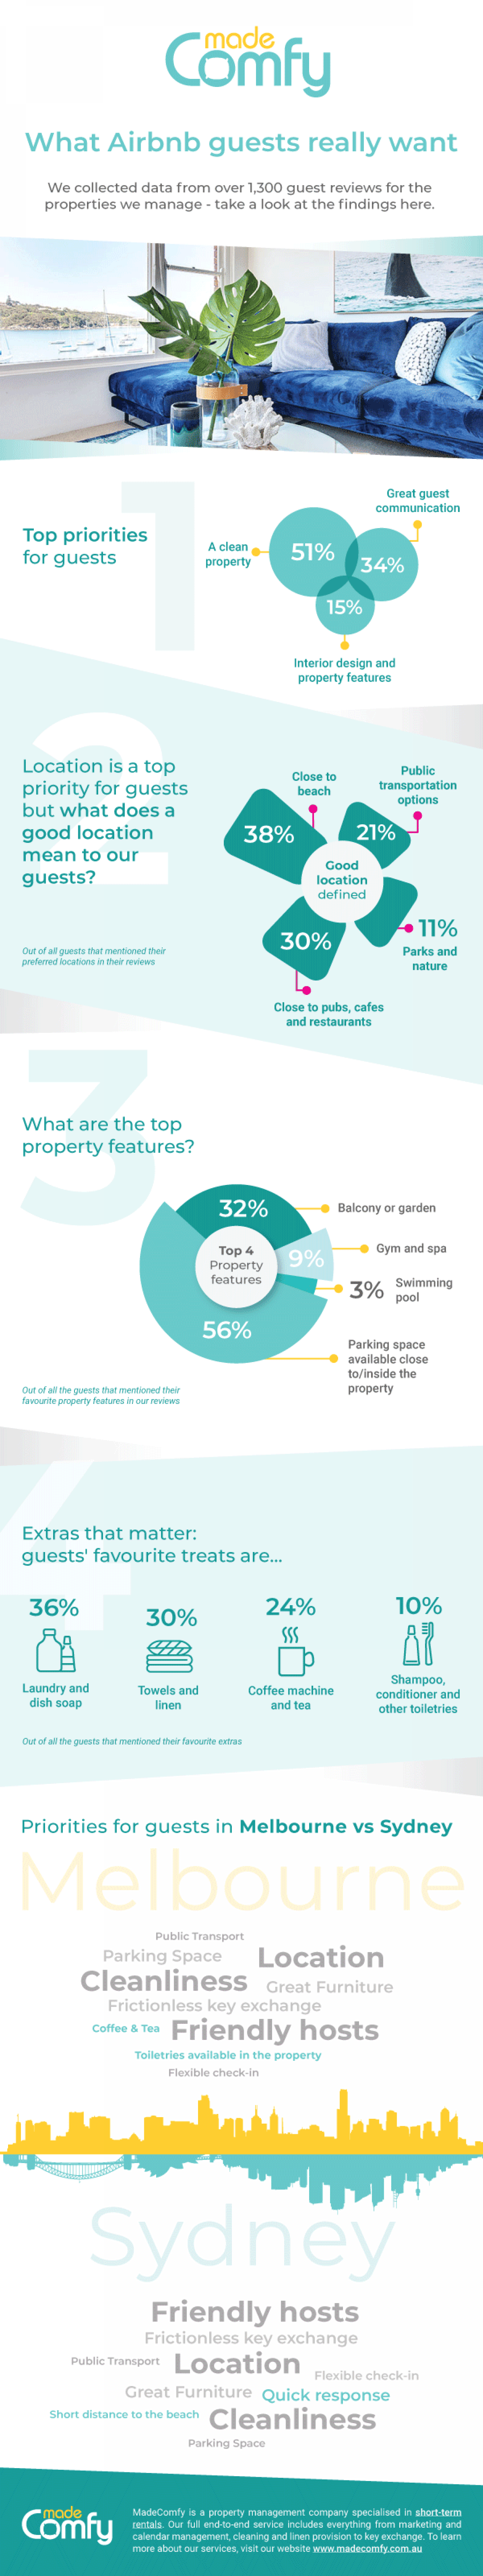 What Airbnb guests really want Infographic